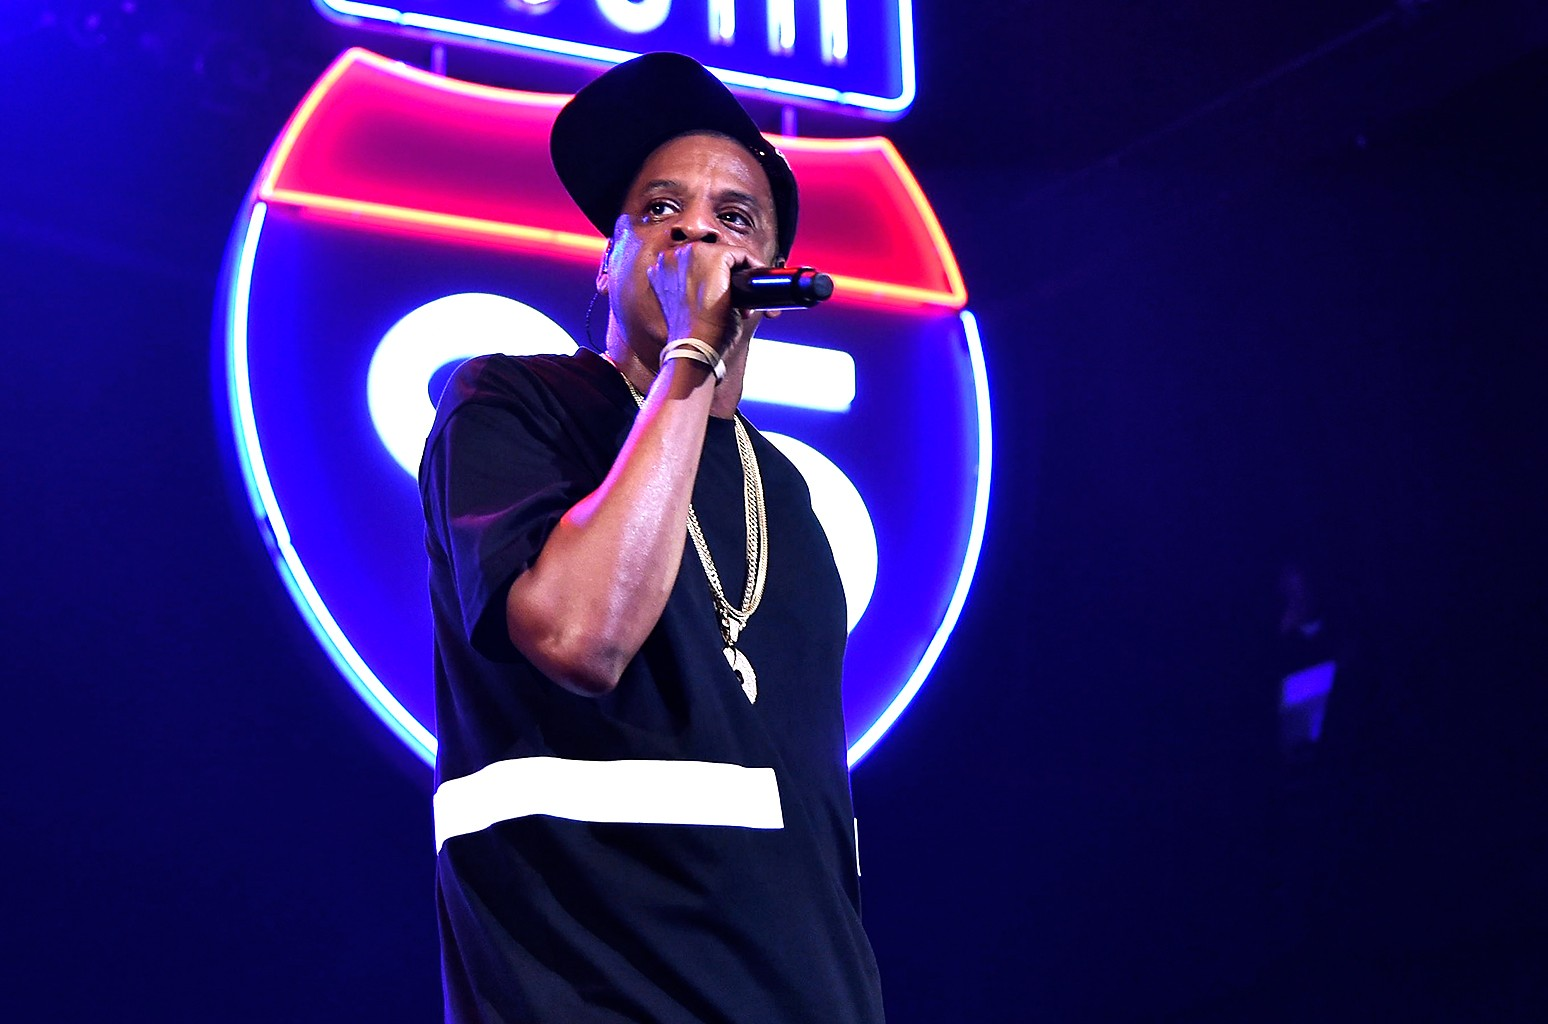 Jay Z performs during TIDAL X: Jay-Z B-sides in NYC on May 16, 2015 in New York City.